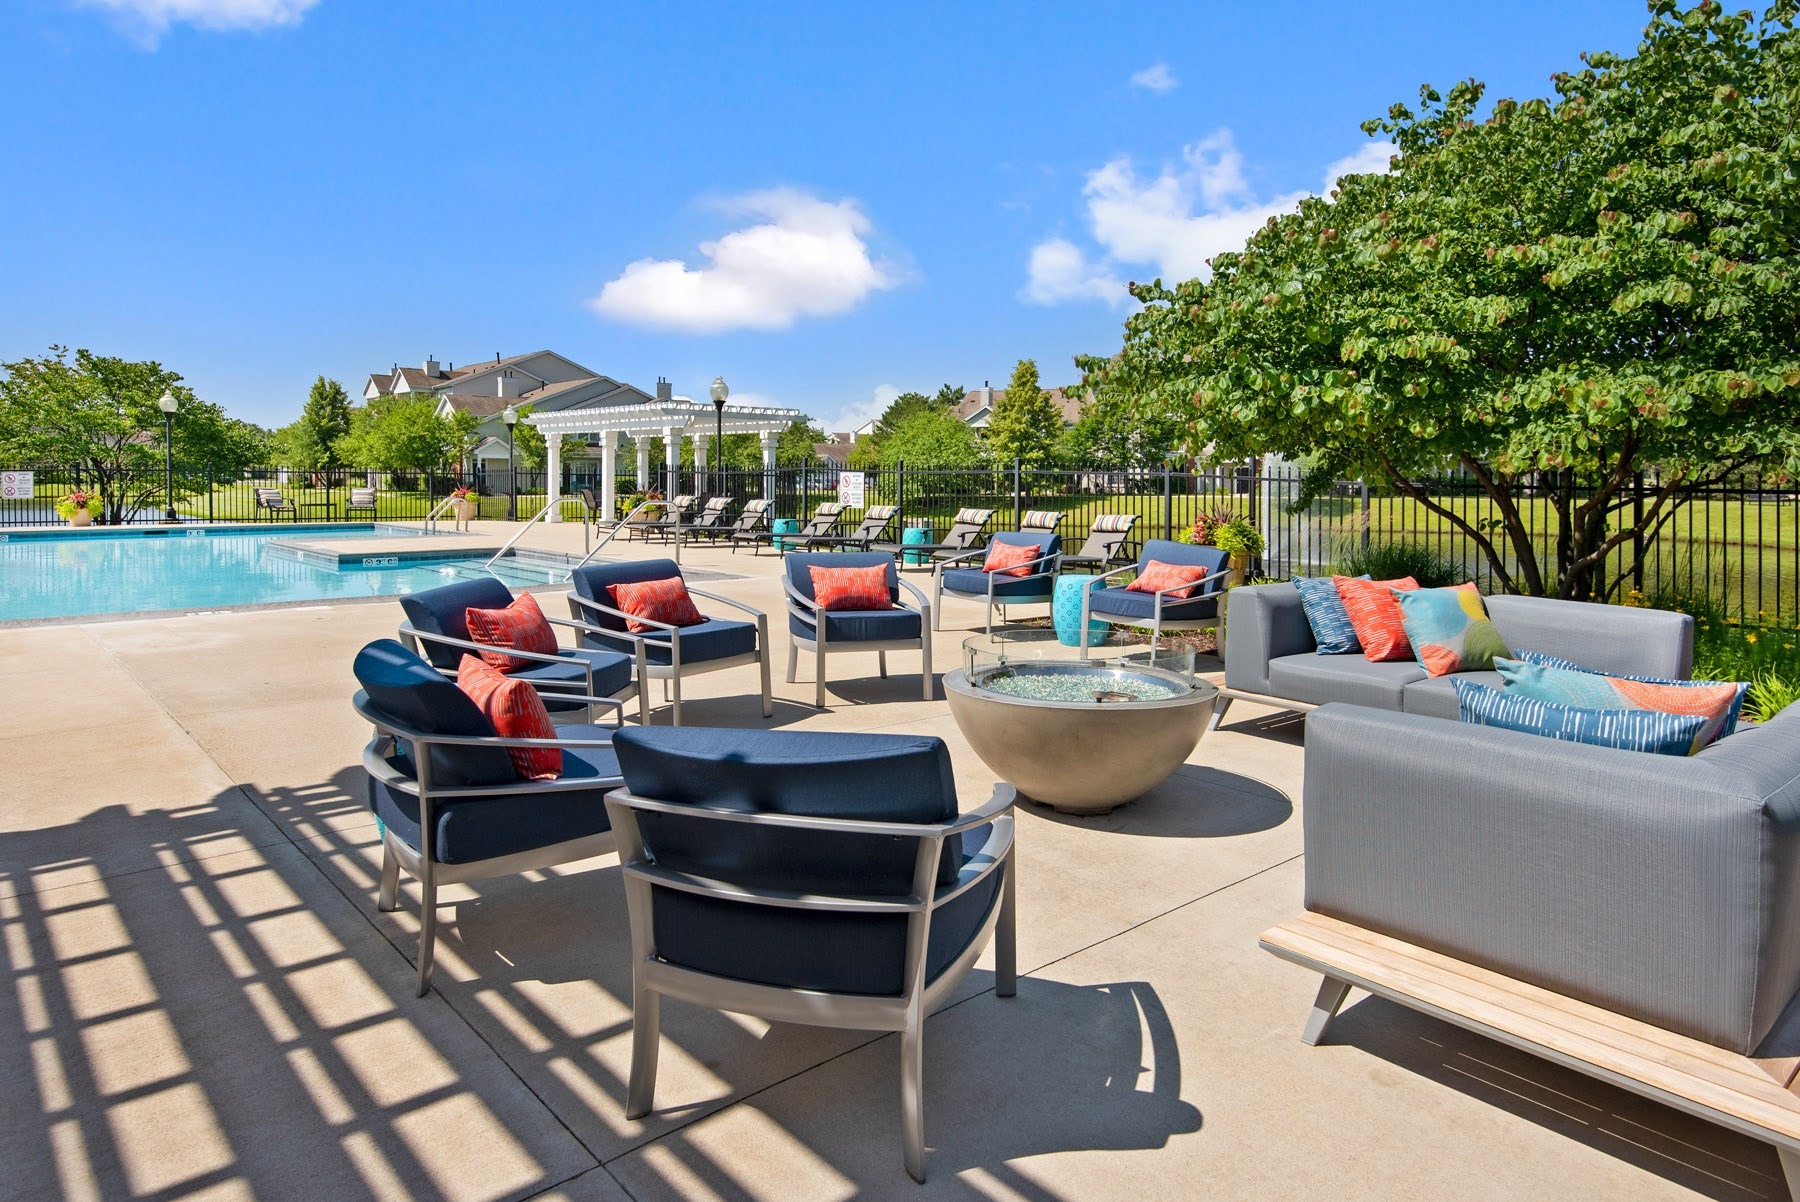 Outdoor swimming pool with poolside seating